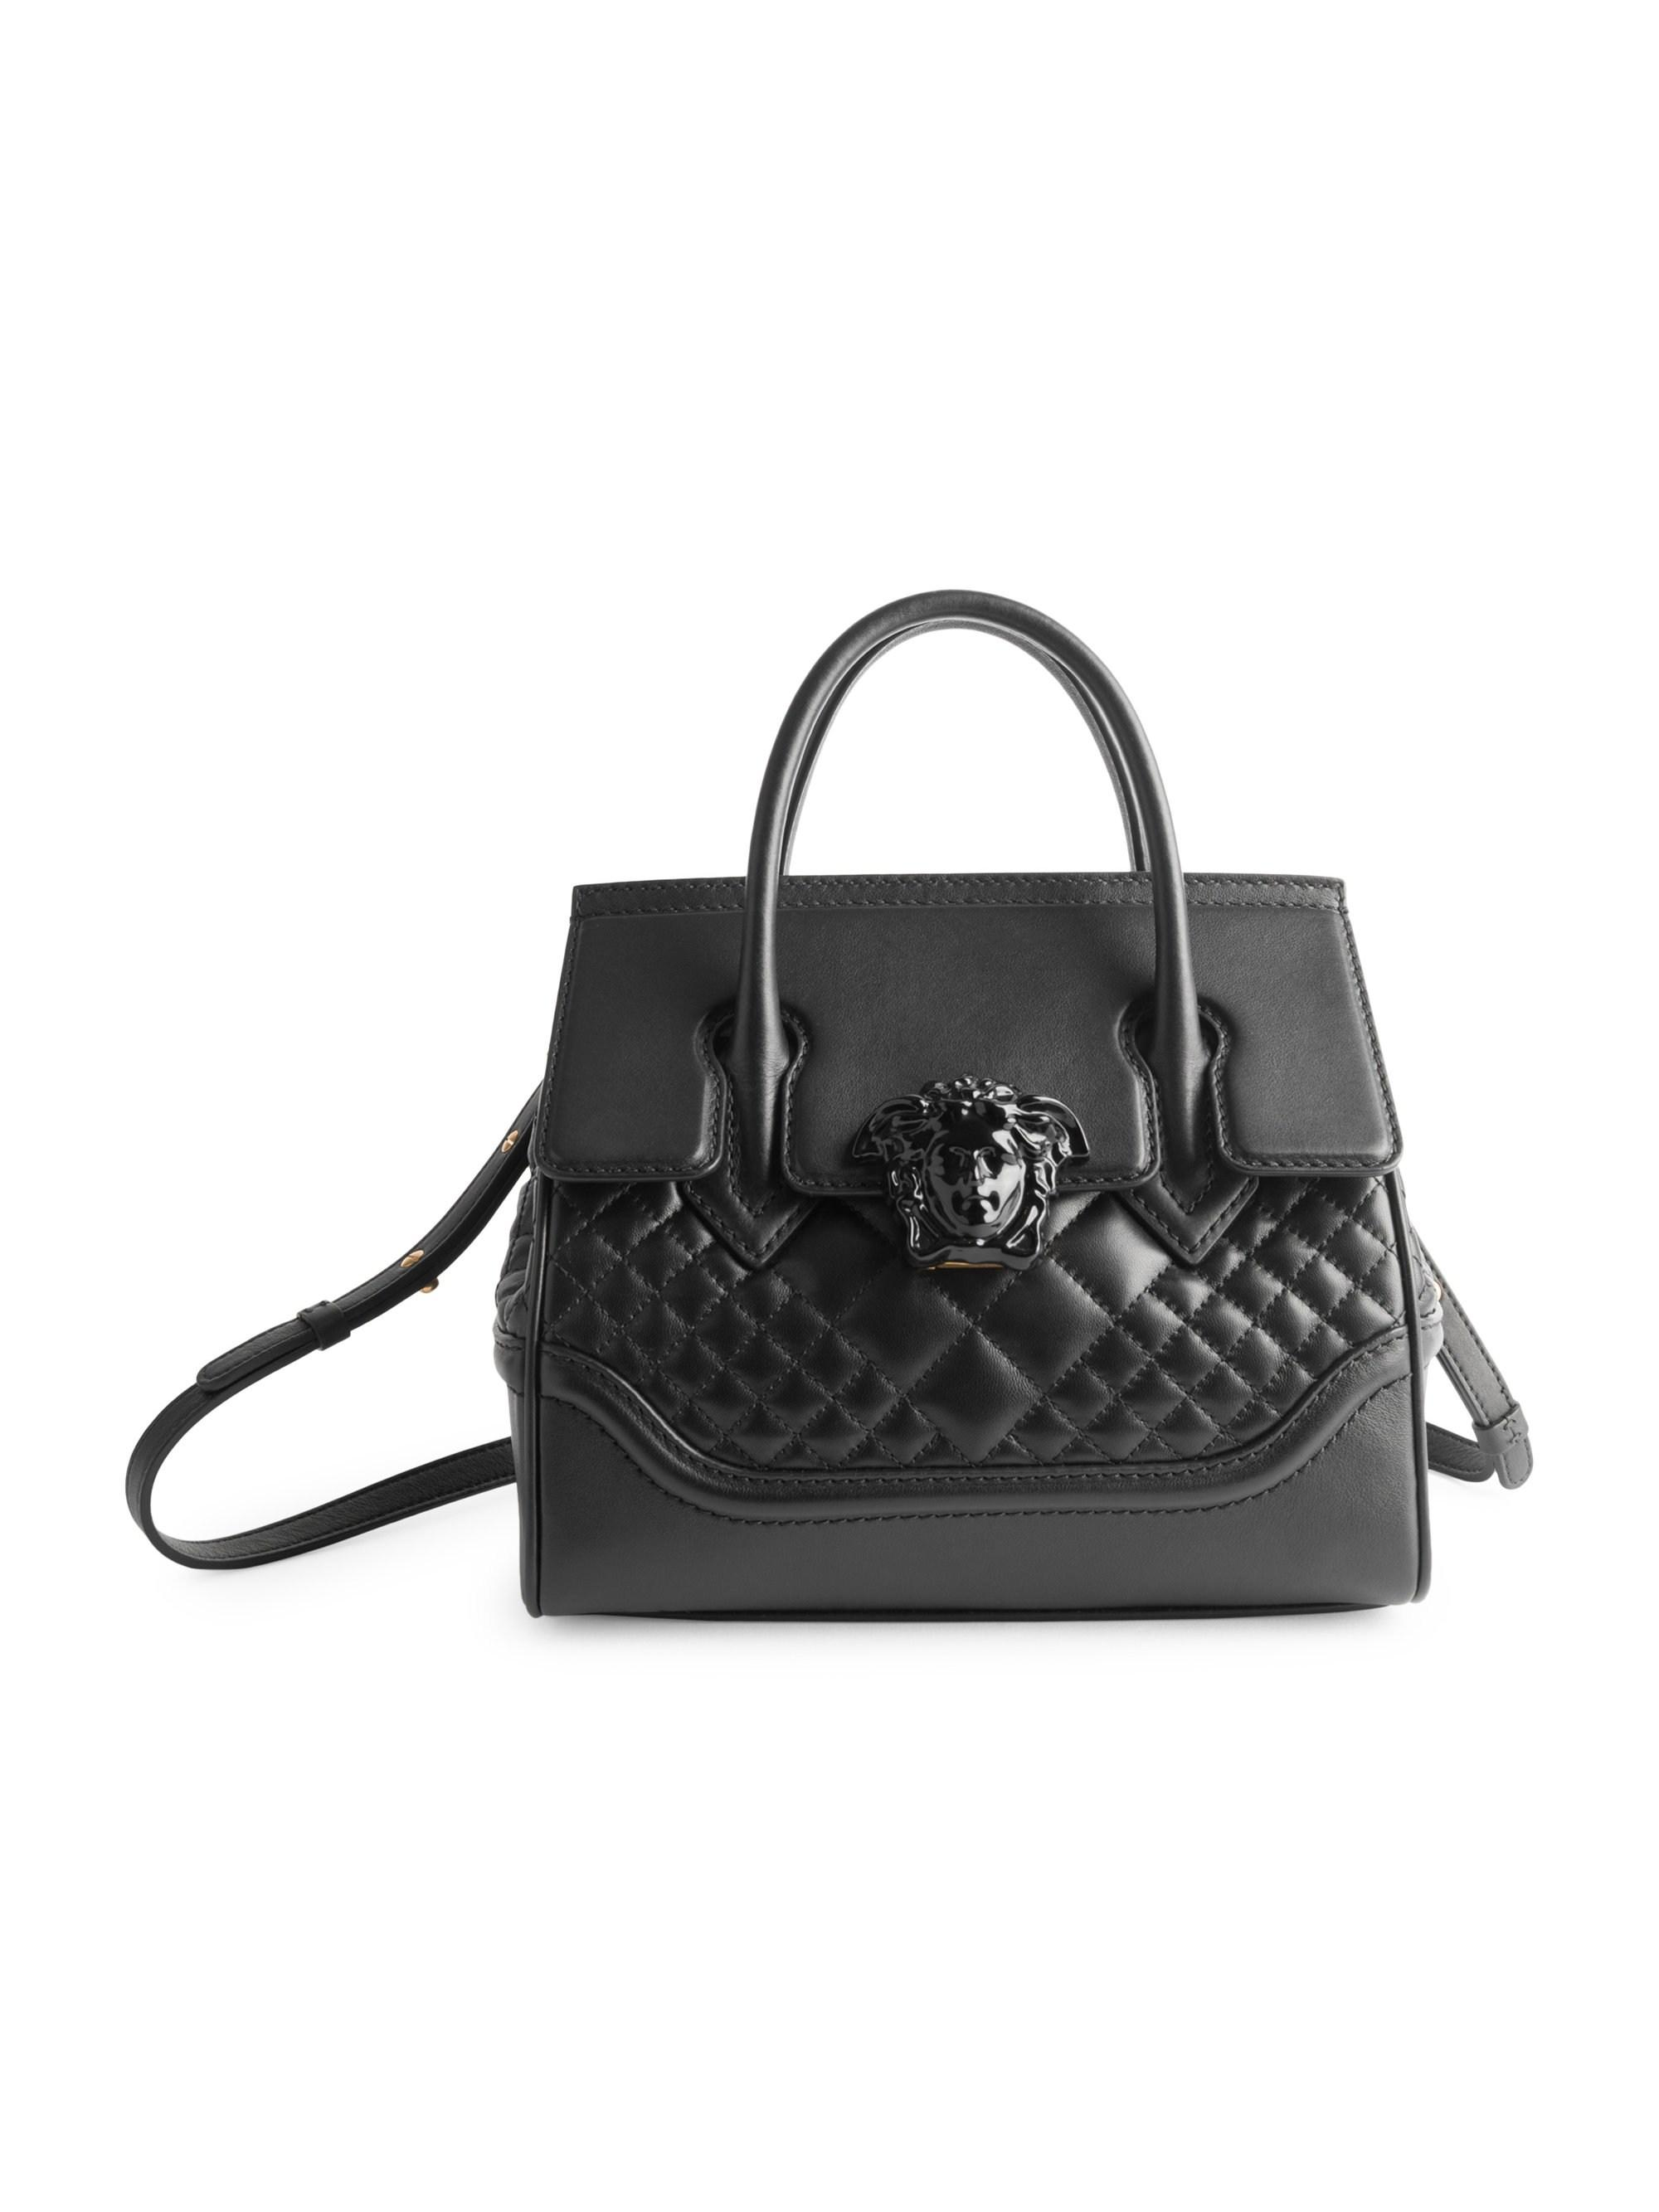 68879f6cbf Versace Quilted Palazzo Empire Top Handle Bag in Black - Lyst